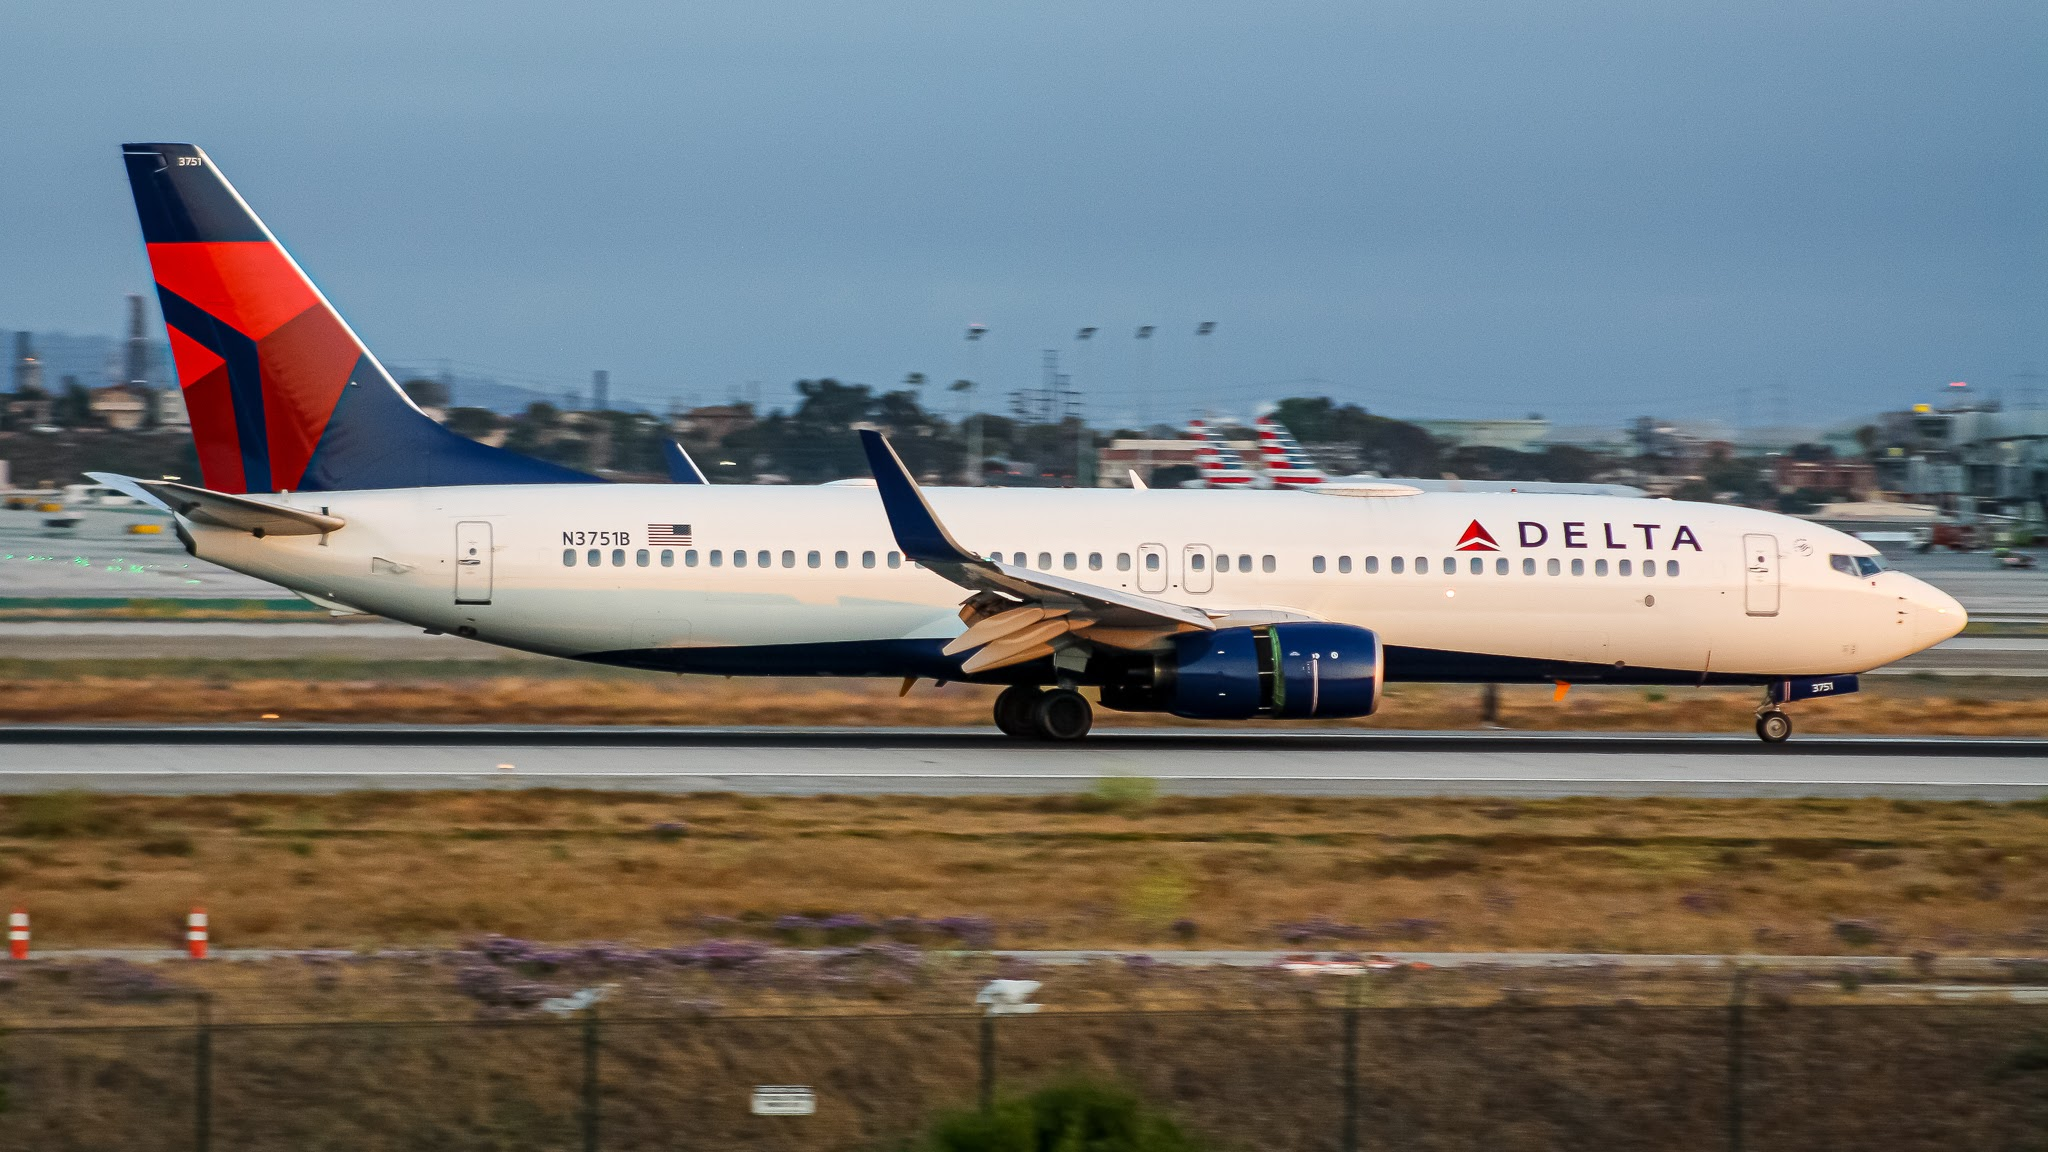 Photo of N3751B - Delta Airlines Boeing 737-800 at LAX